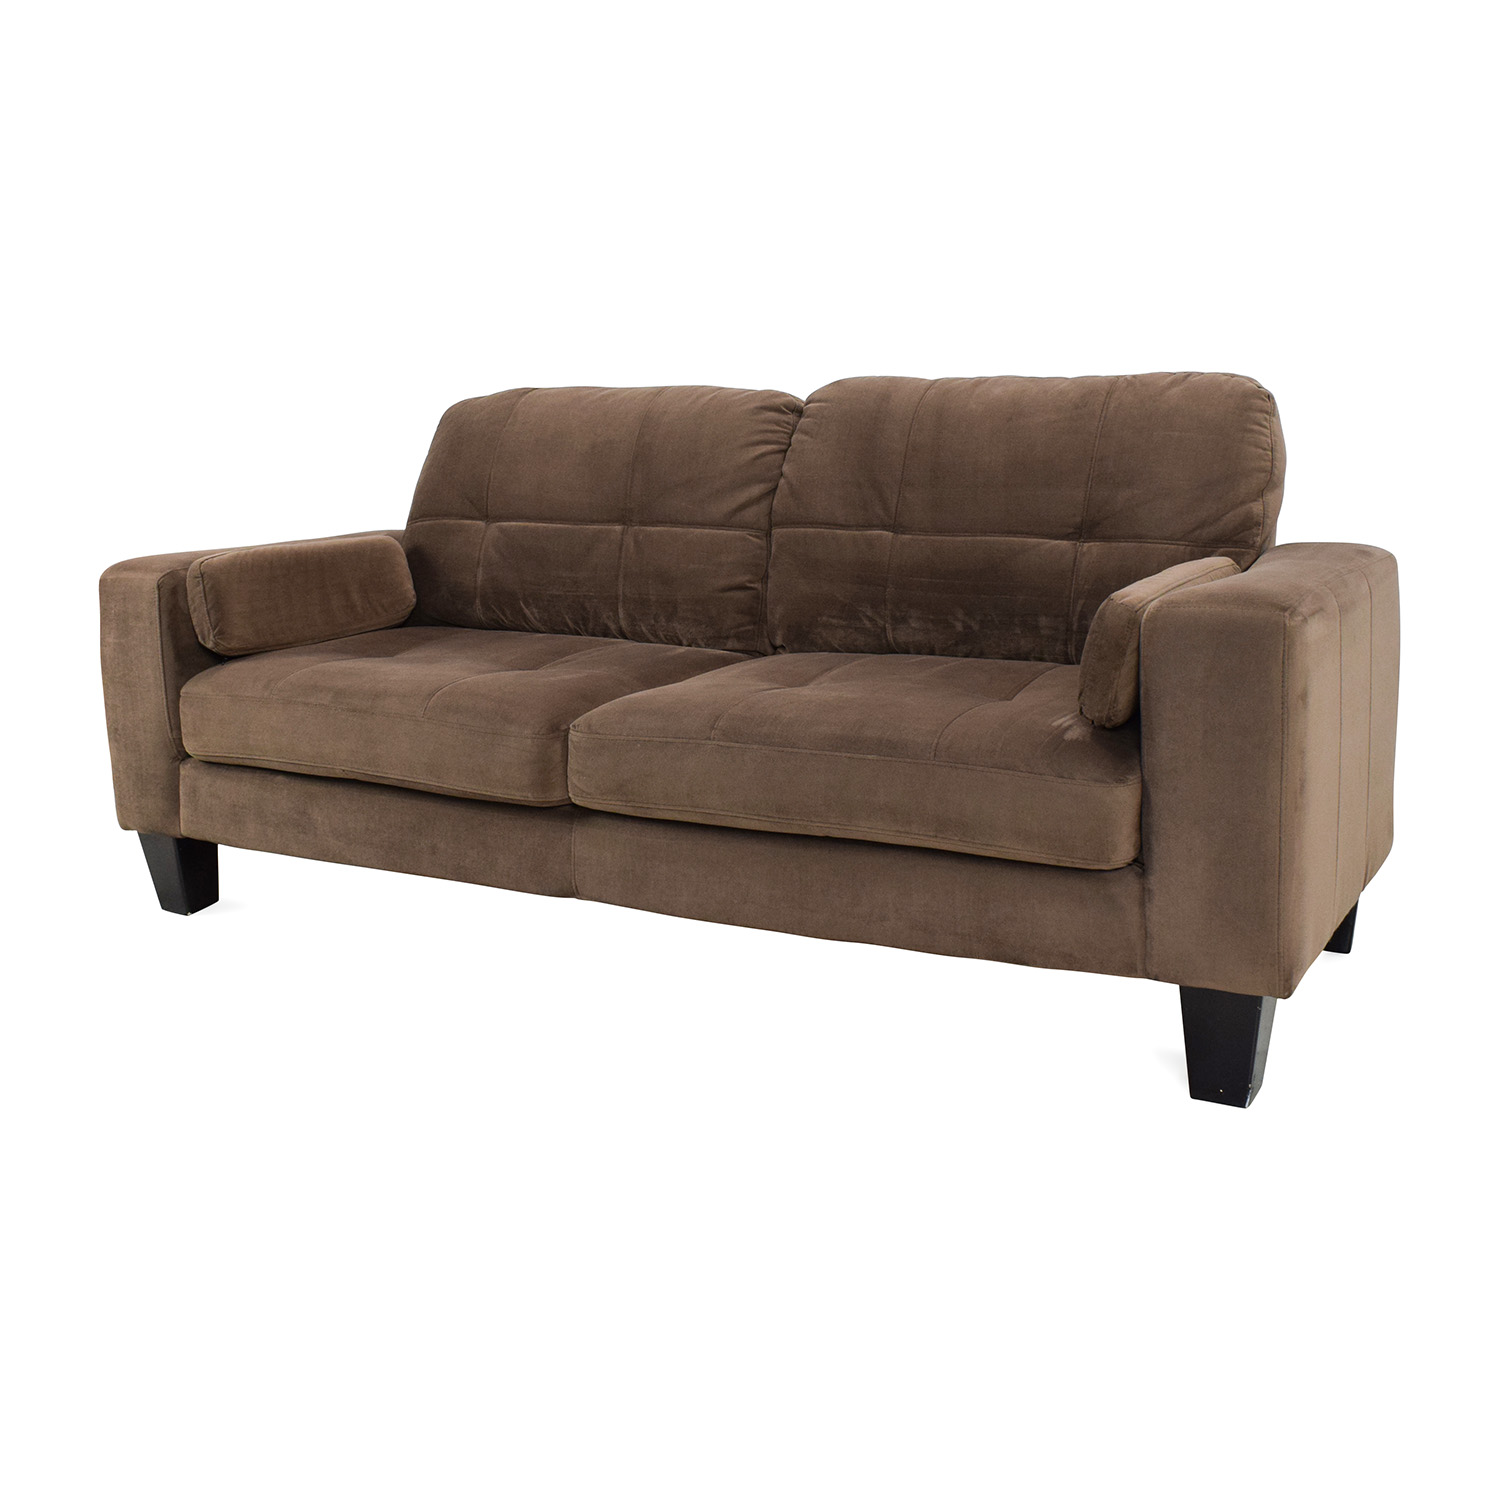 71 off jennifer convertibles jennifer convertibles sofa for Sectional sofa jennifer convertible